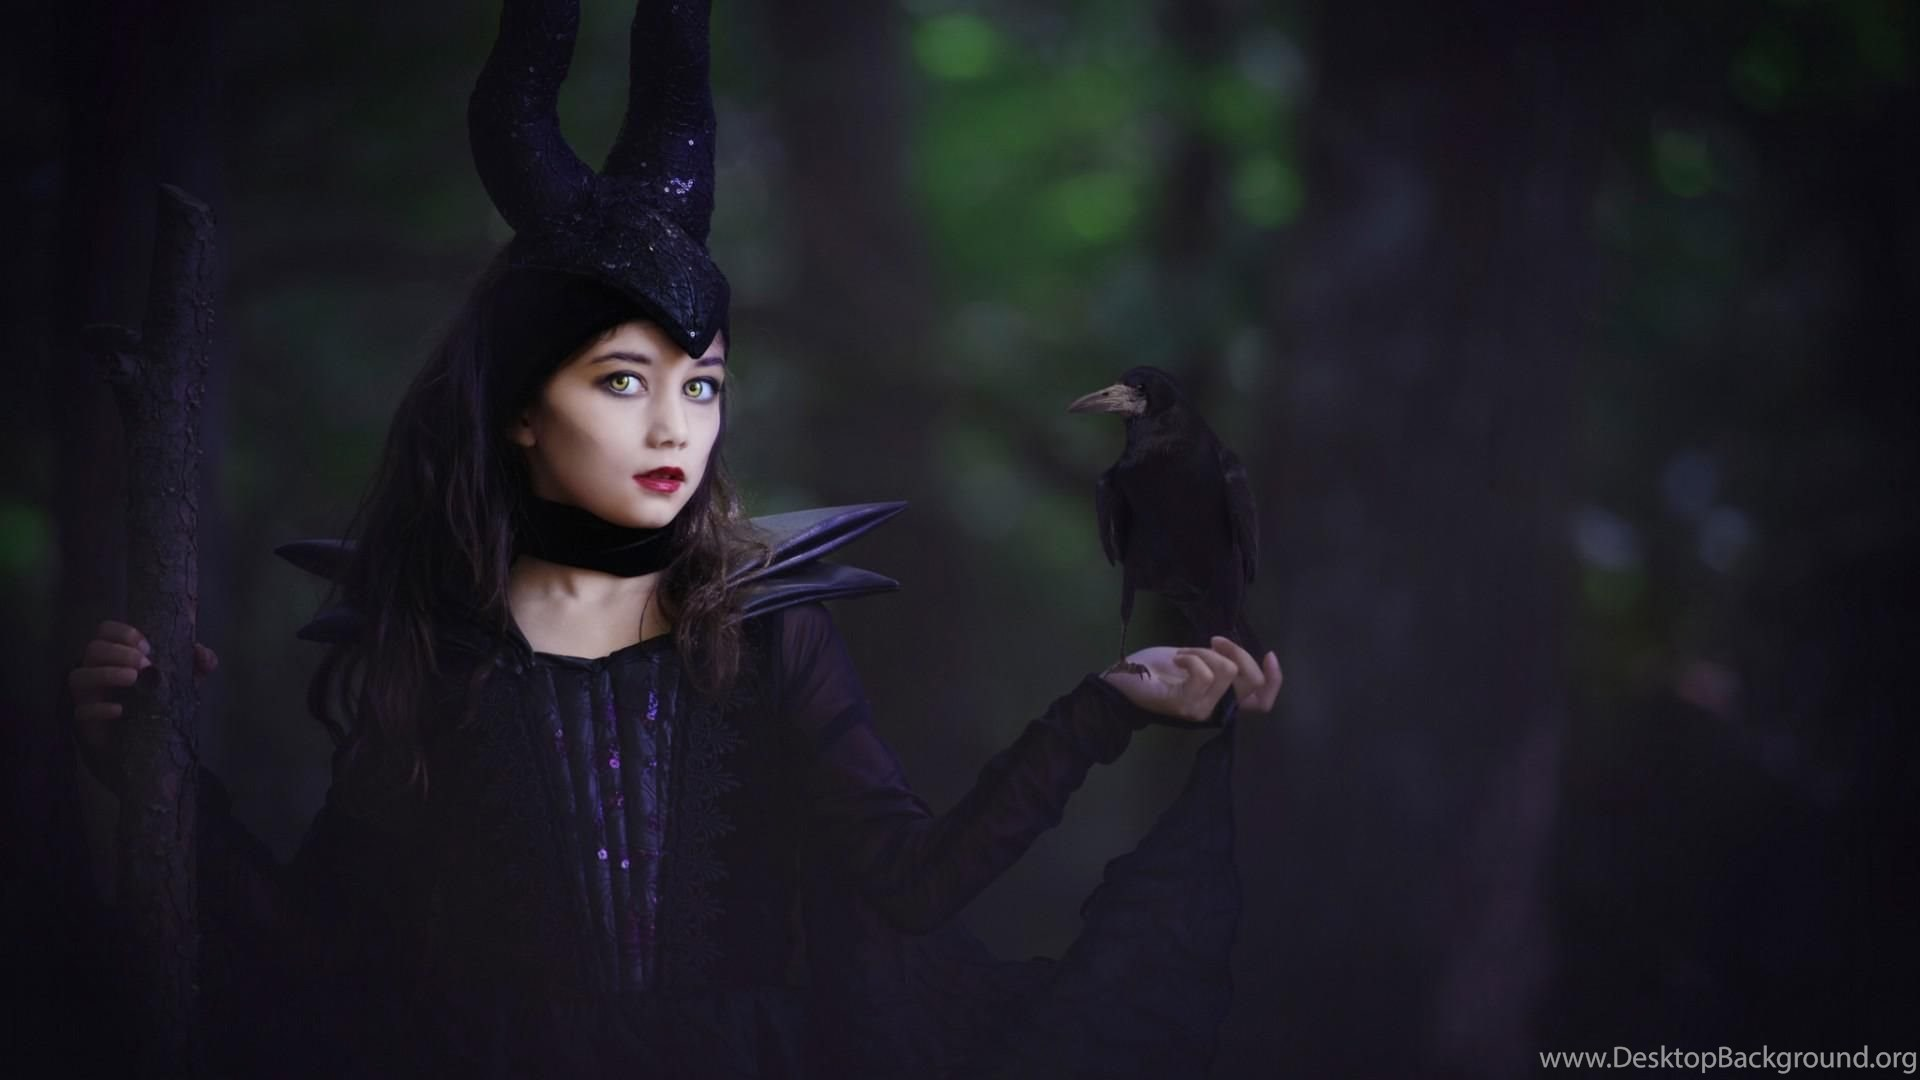 Maleficent Angelina Jolie 2014 Hd Wallpaper Get It Now